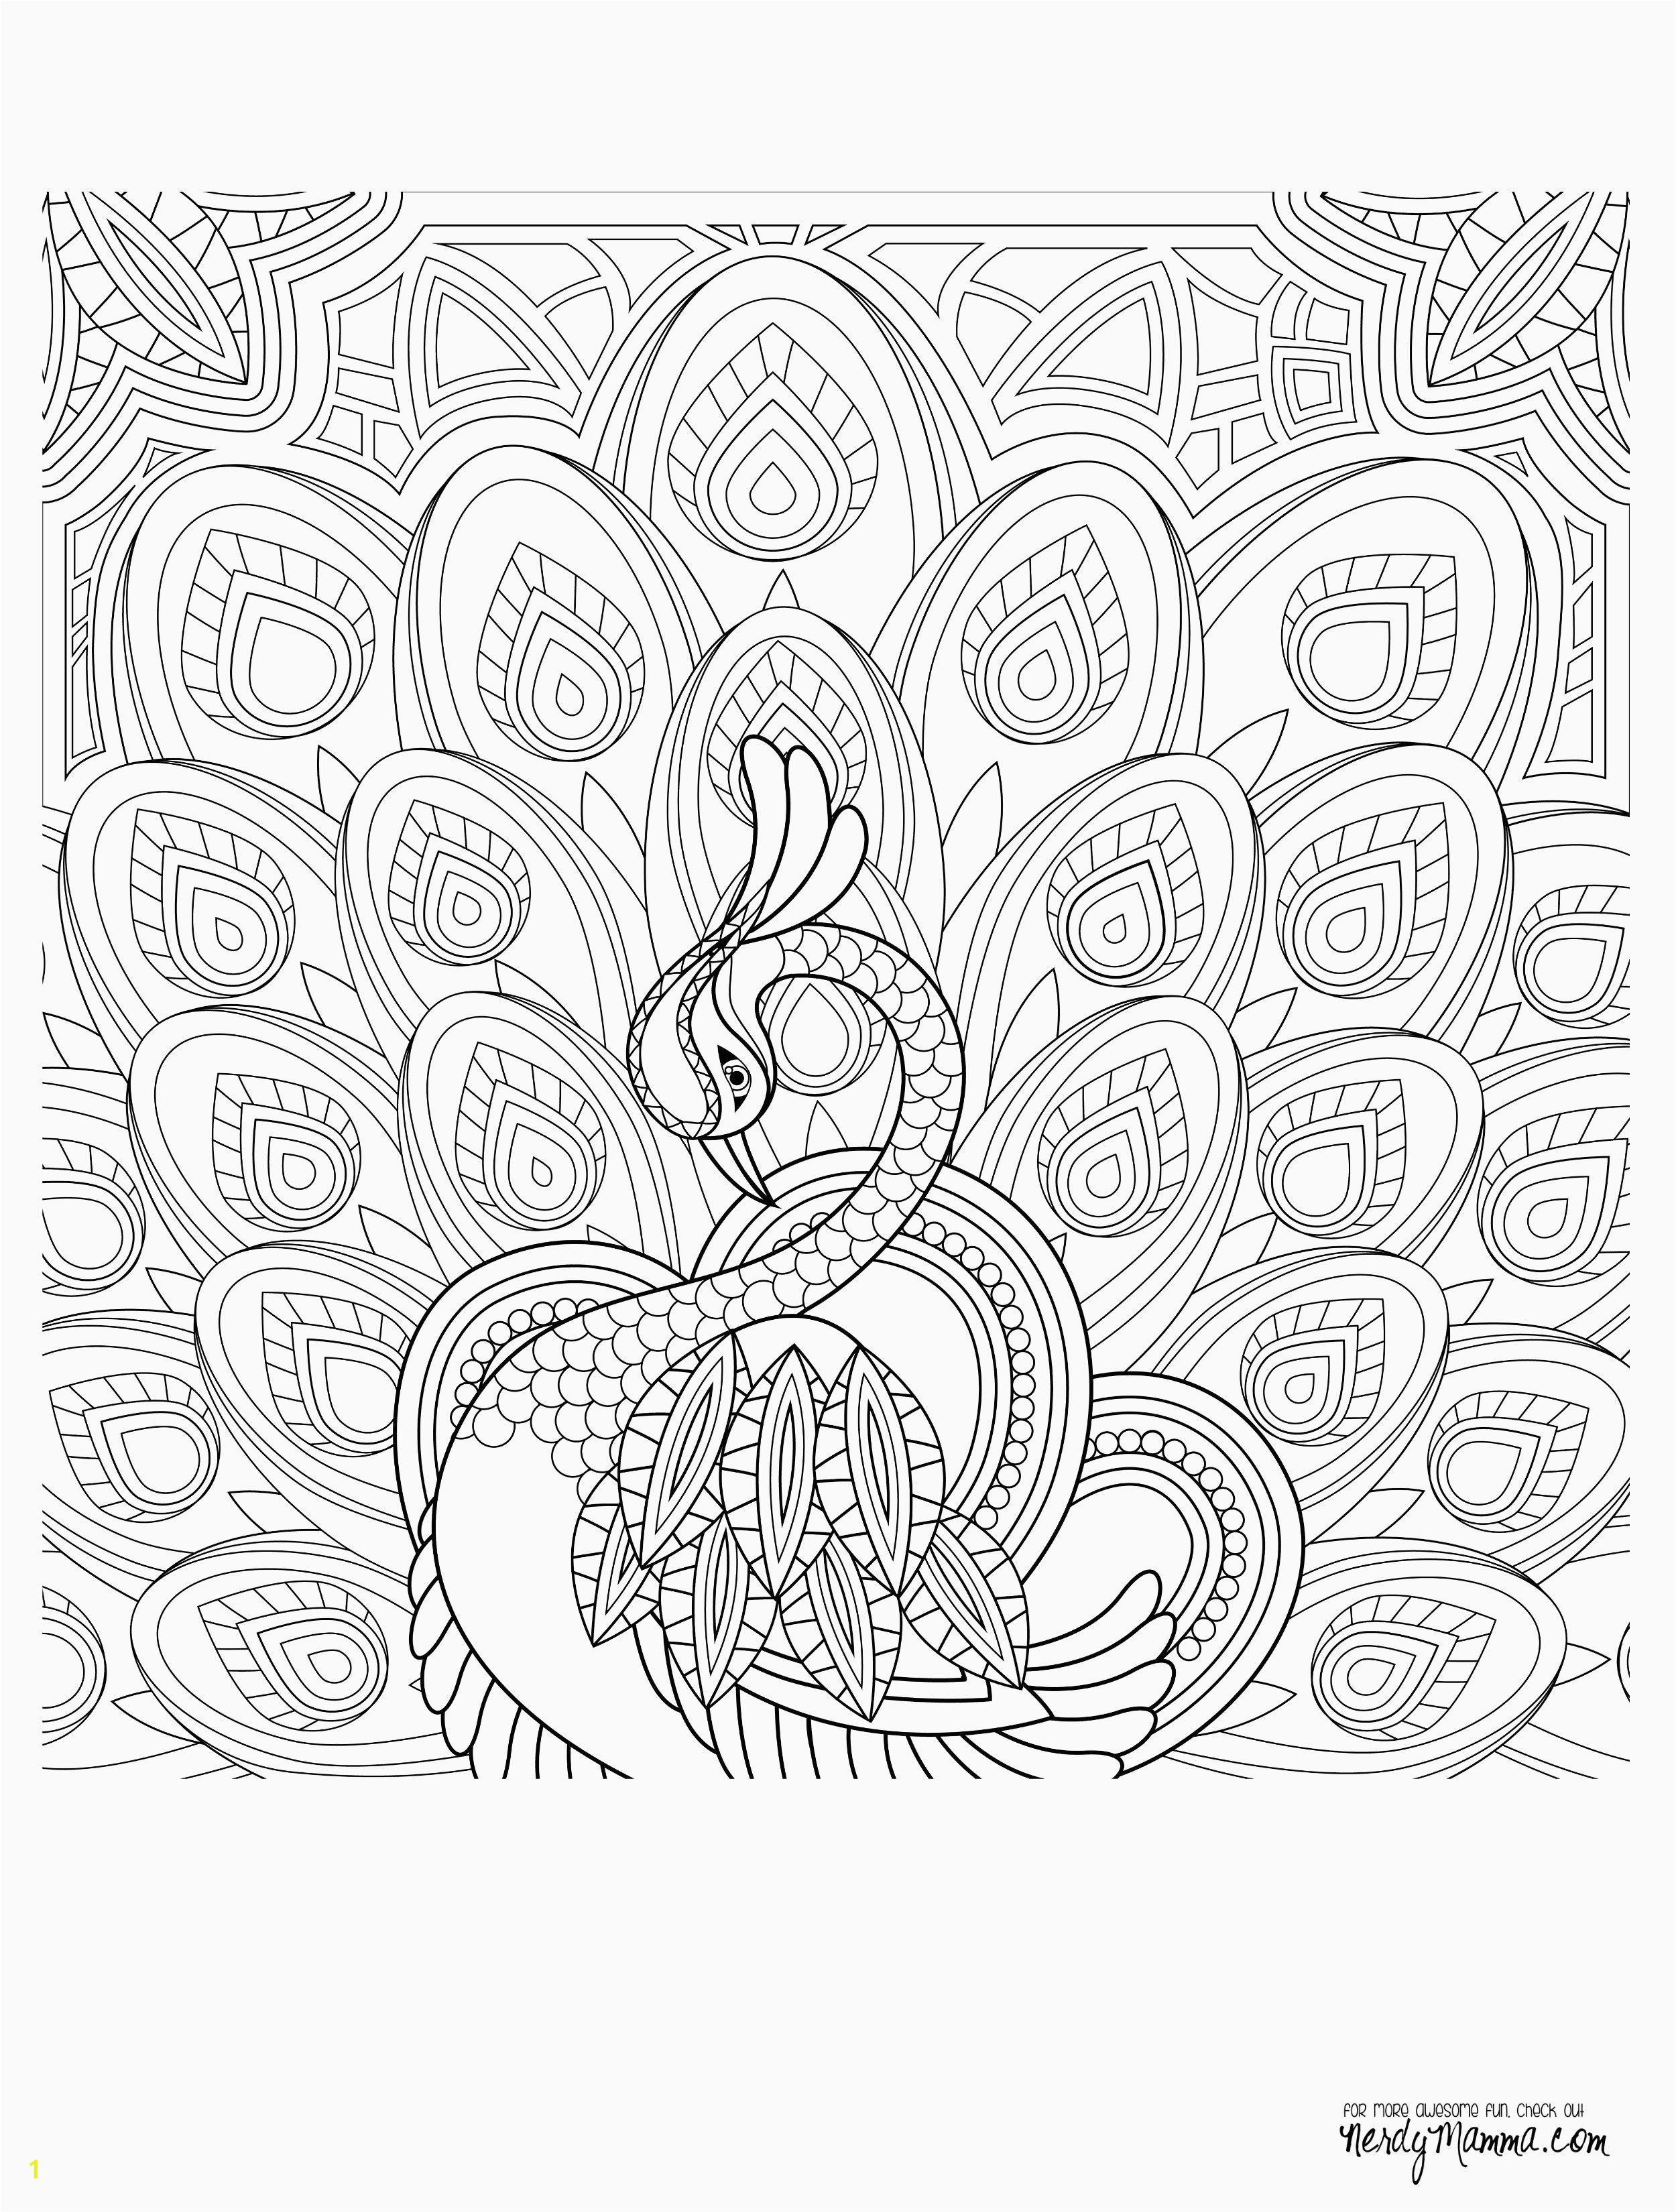 Free Mandala Coloring Pages Free Mandala Coloring Pages For Adults Printables Zabelyesayan